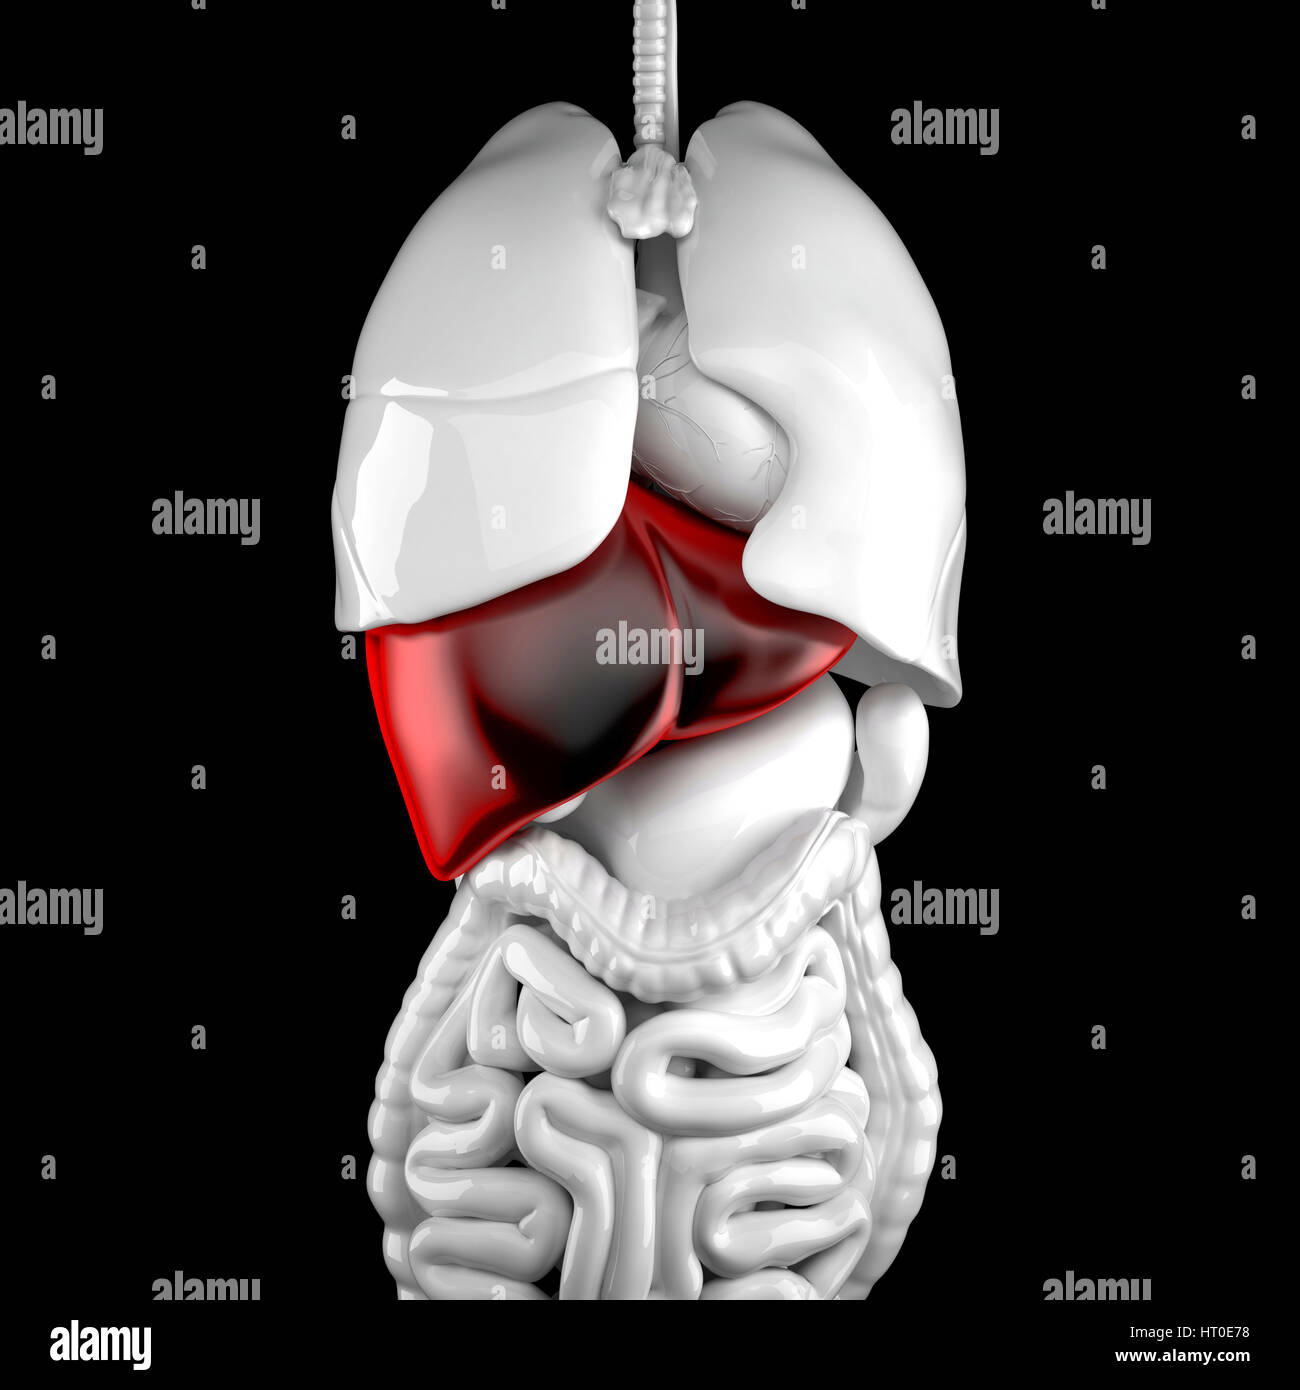 3d Anatomical Illustration Contains Clipping Path